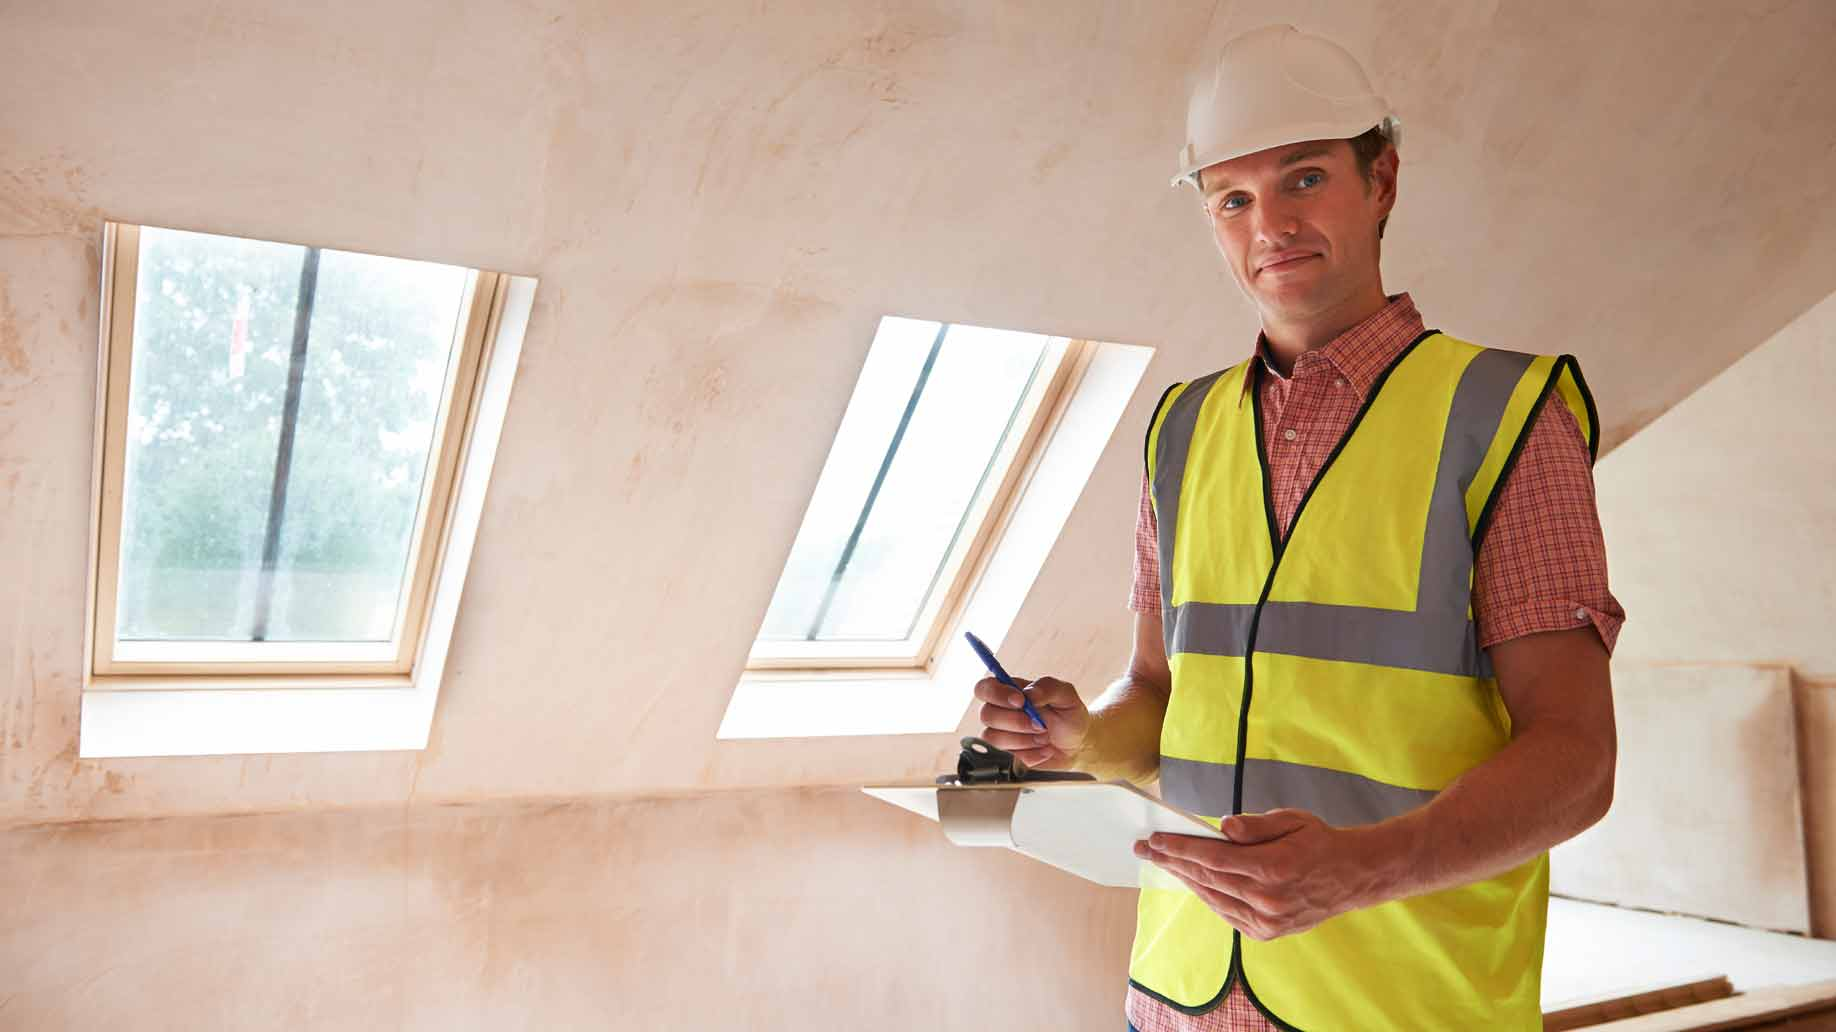 Top 10 Newest Renovation Ideas That Increase Your Home 39 S Value